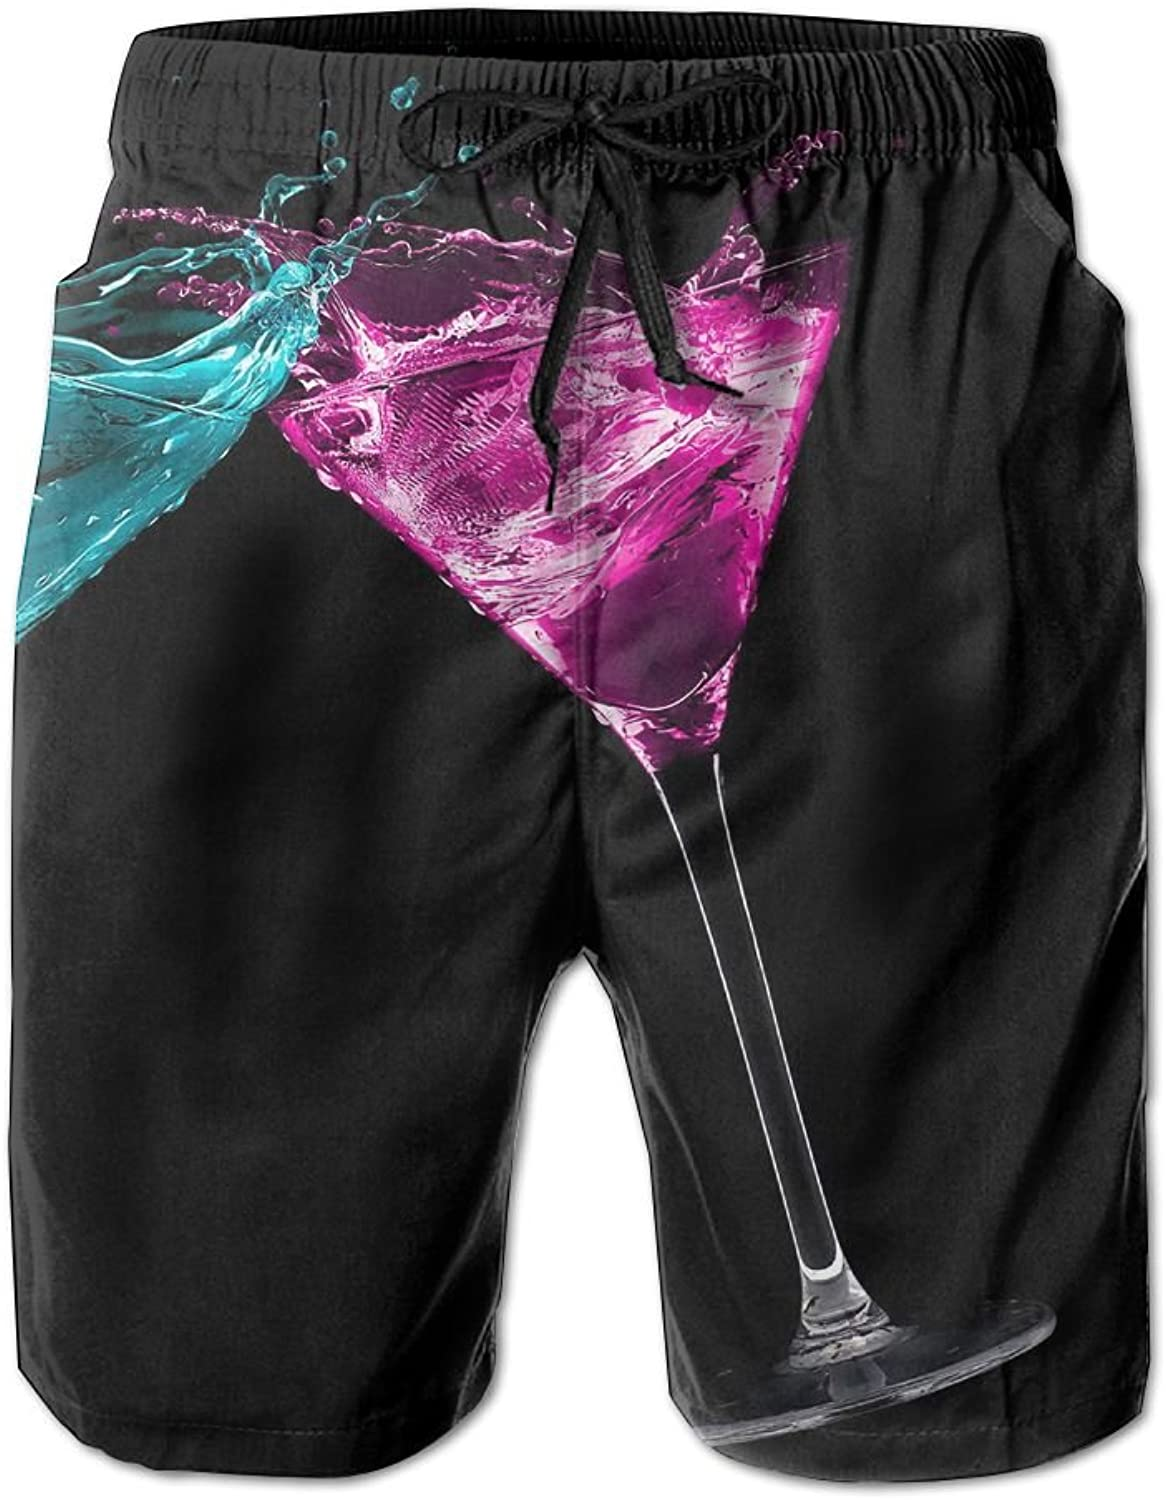 - Tydo bluee Pink Cocktail Men's Beach Beach Beach Shorts Casual Surfing Trunks Surf Board Pants With Pockets For Men f4e42c